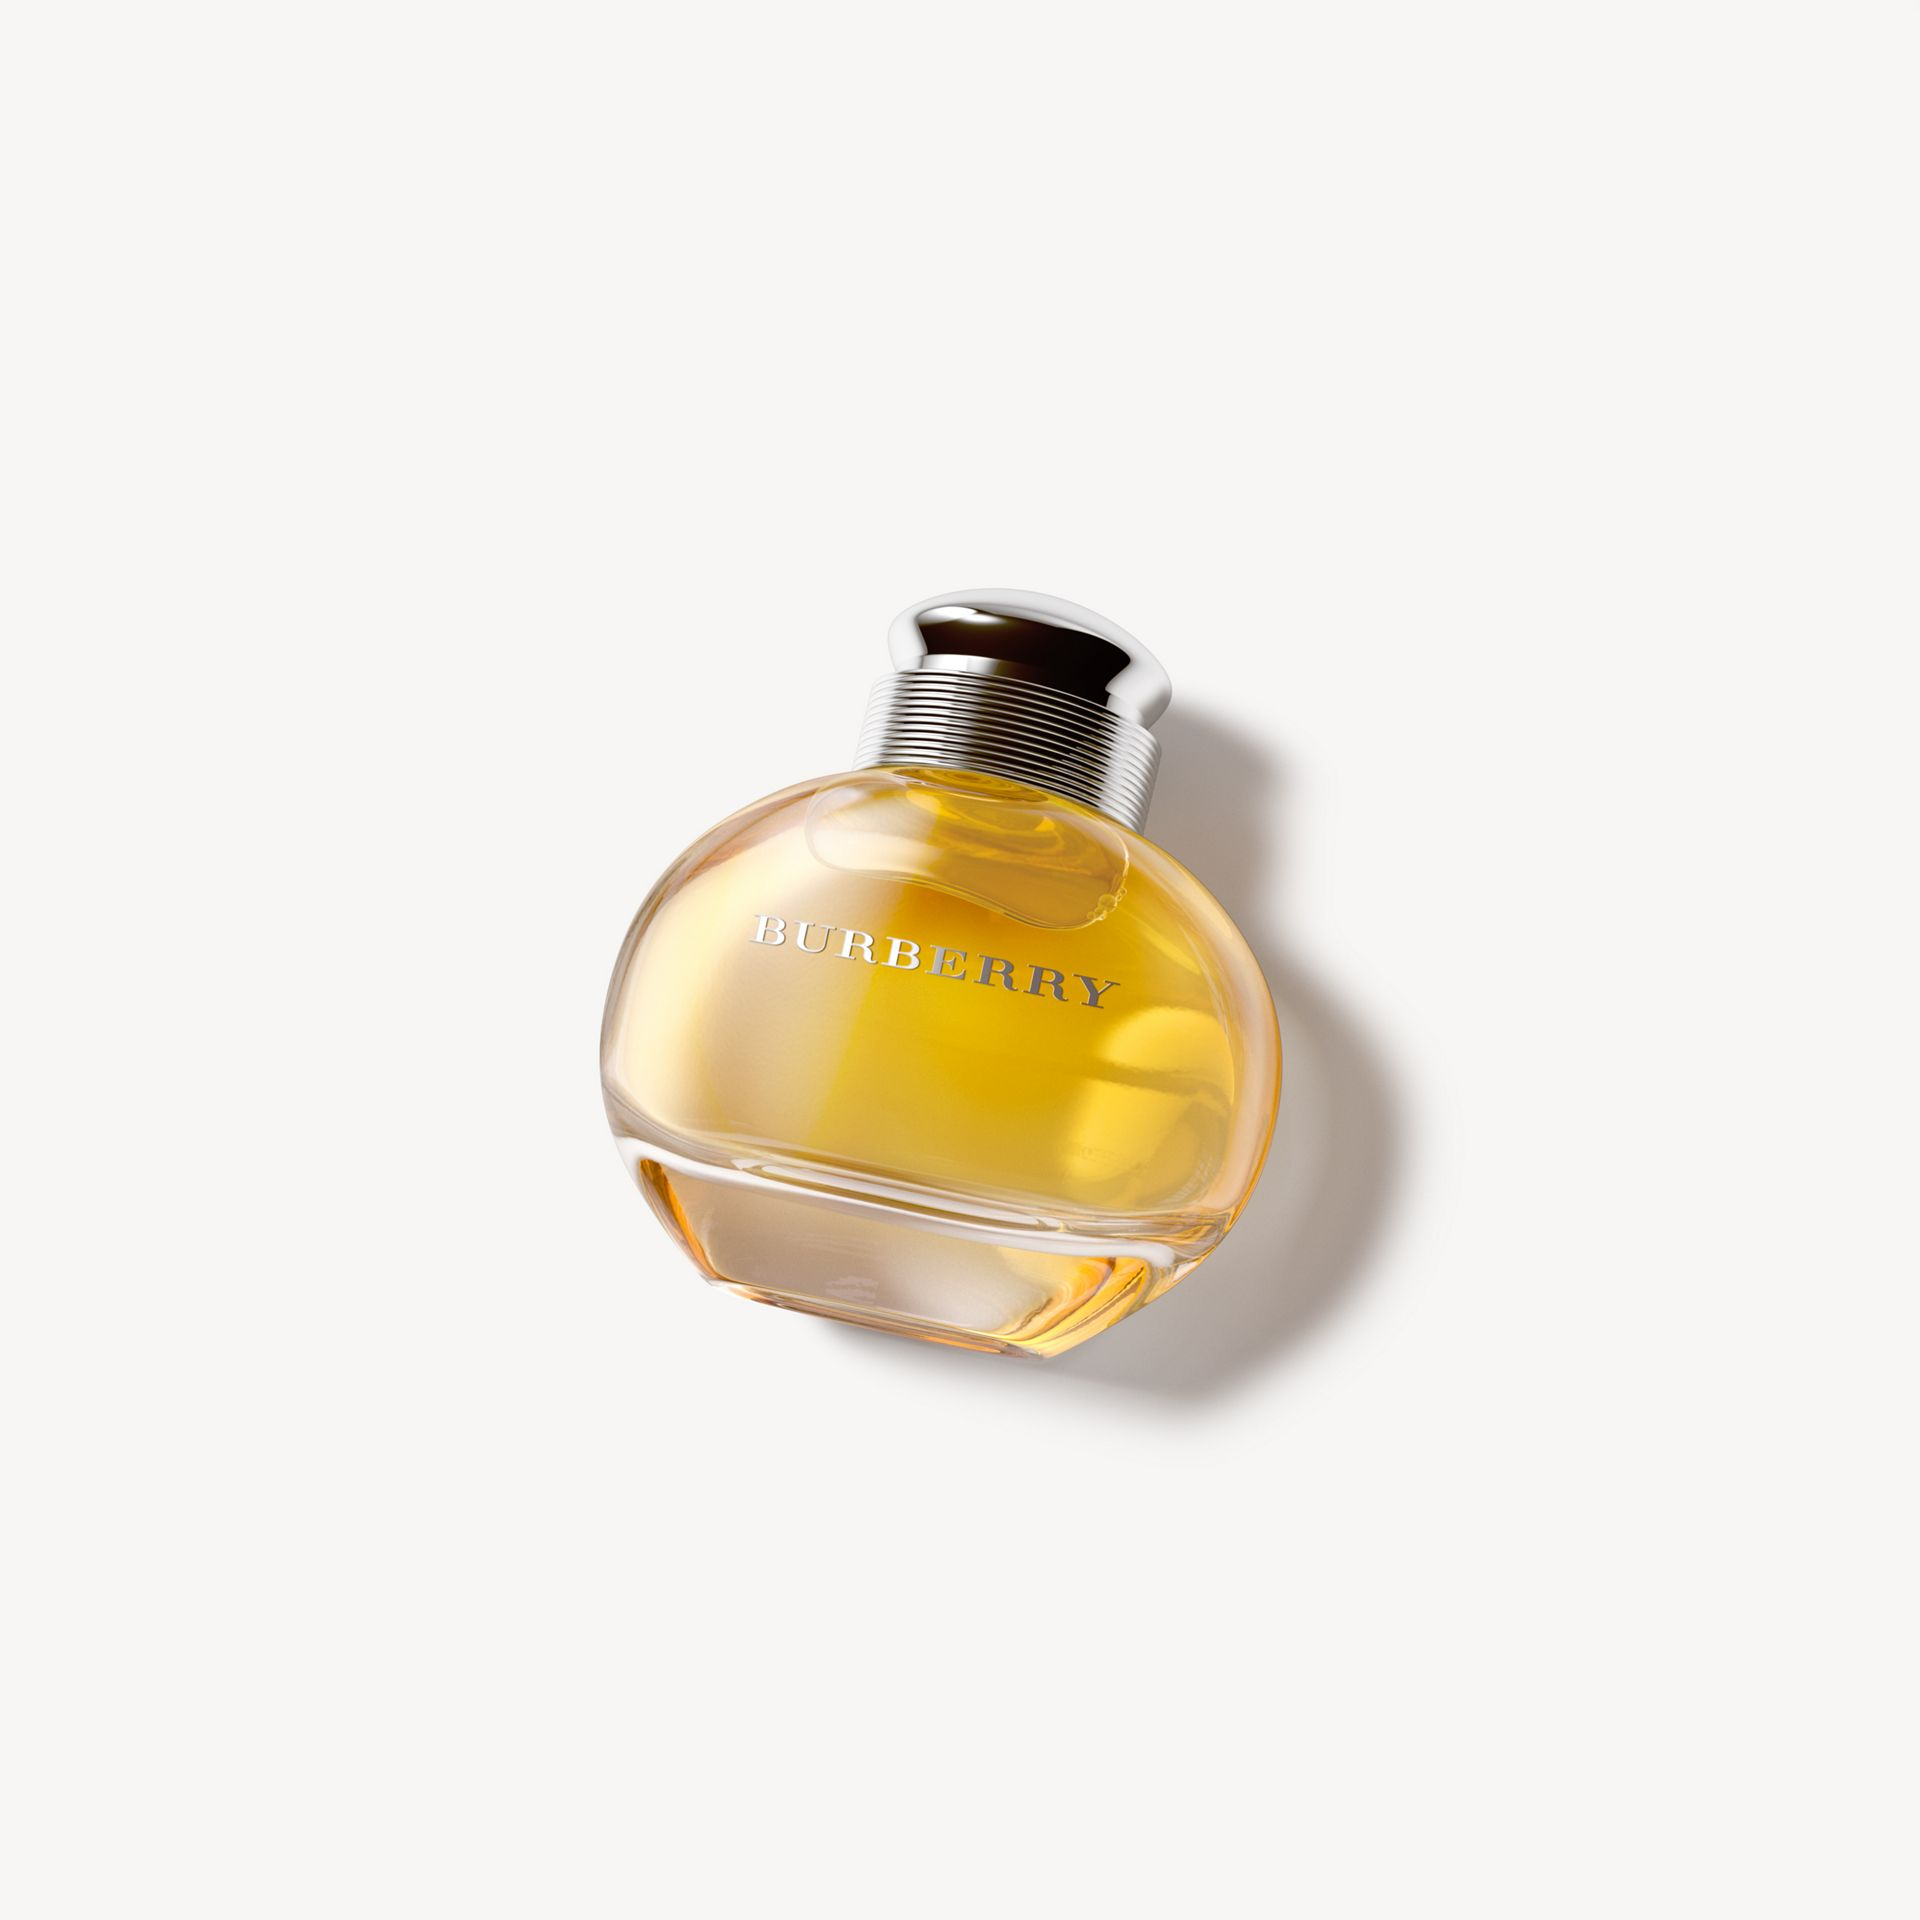 Burberry For Women Eau de Parfum 50 ml - Donna | Burberry - immagine della galleria 0